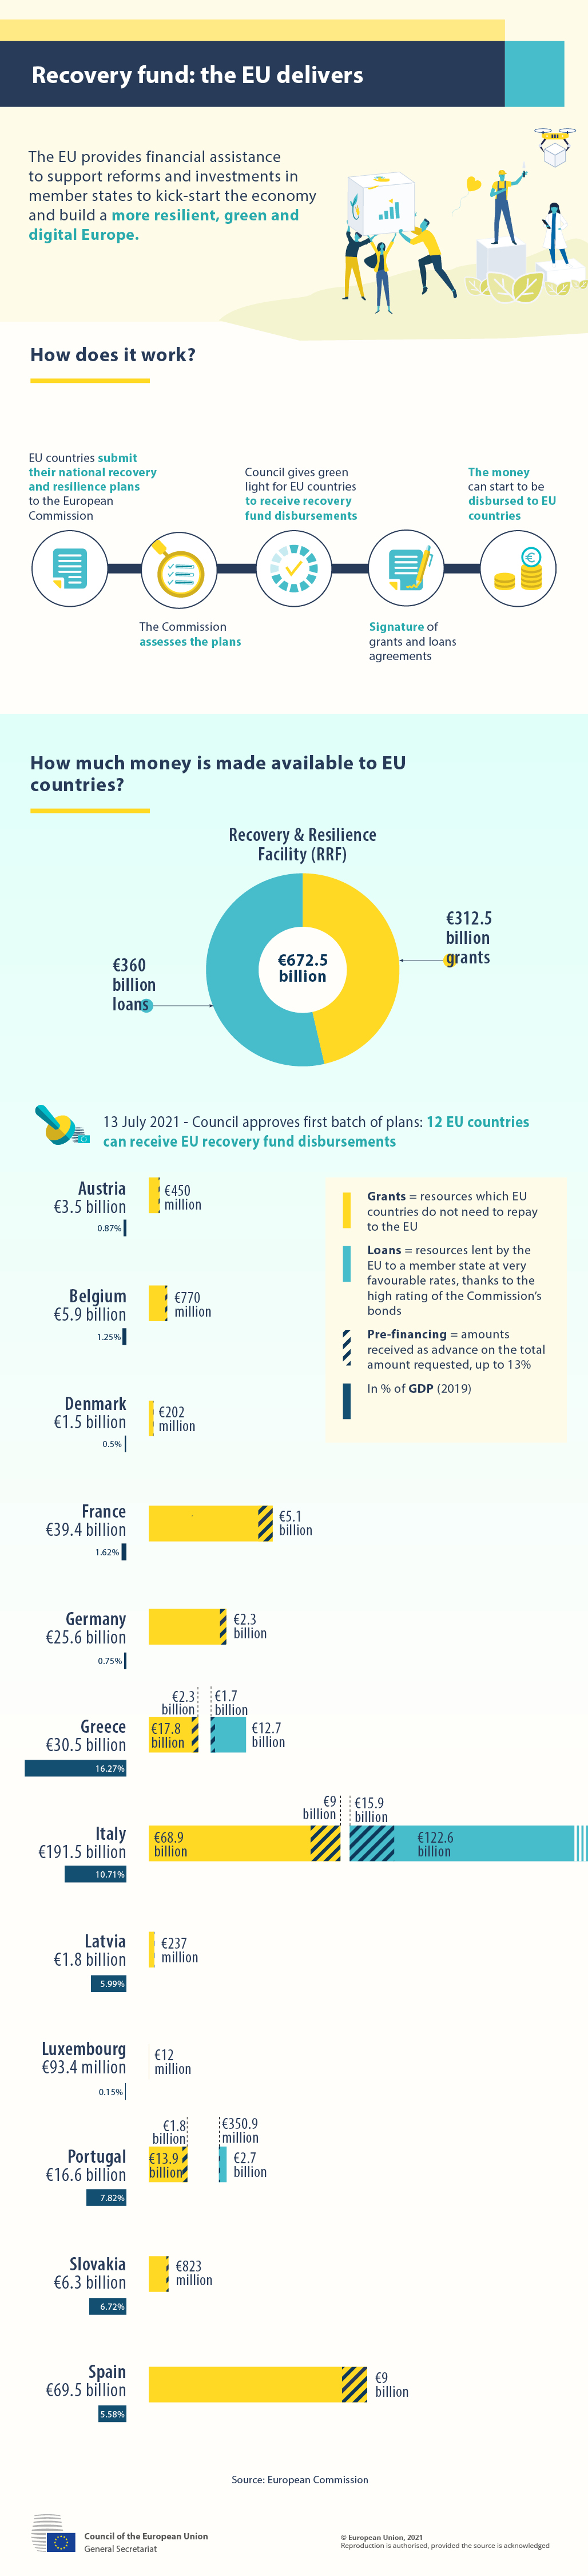 Council approves first batch of recovery and resilience plans: 12 EU countries can receive EU recovery fund disbursements.